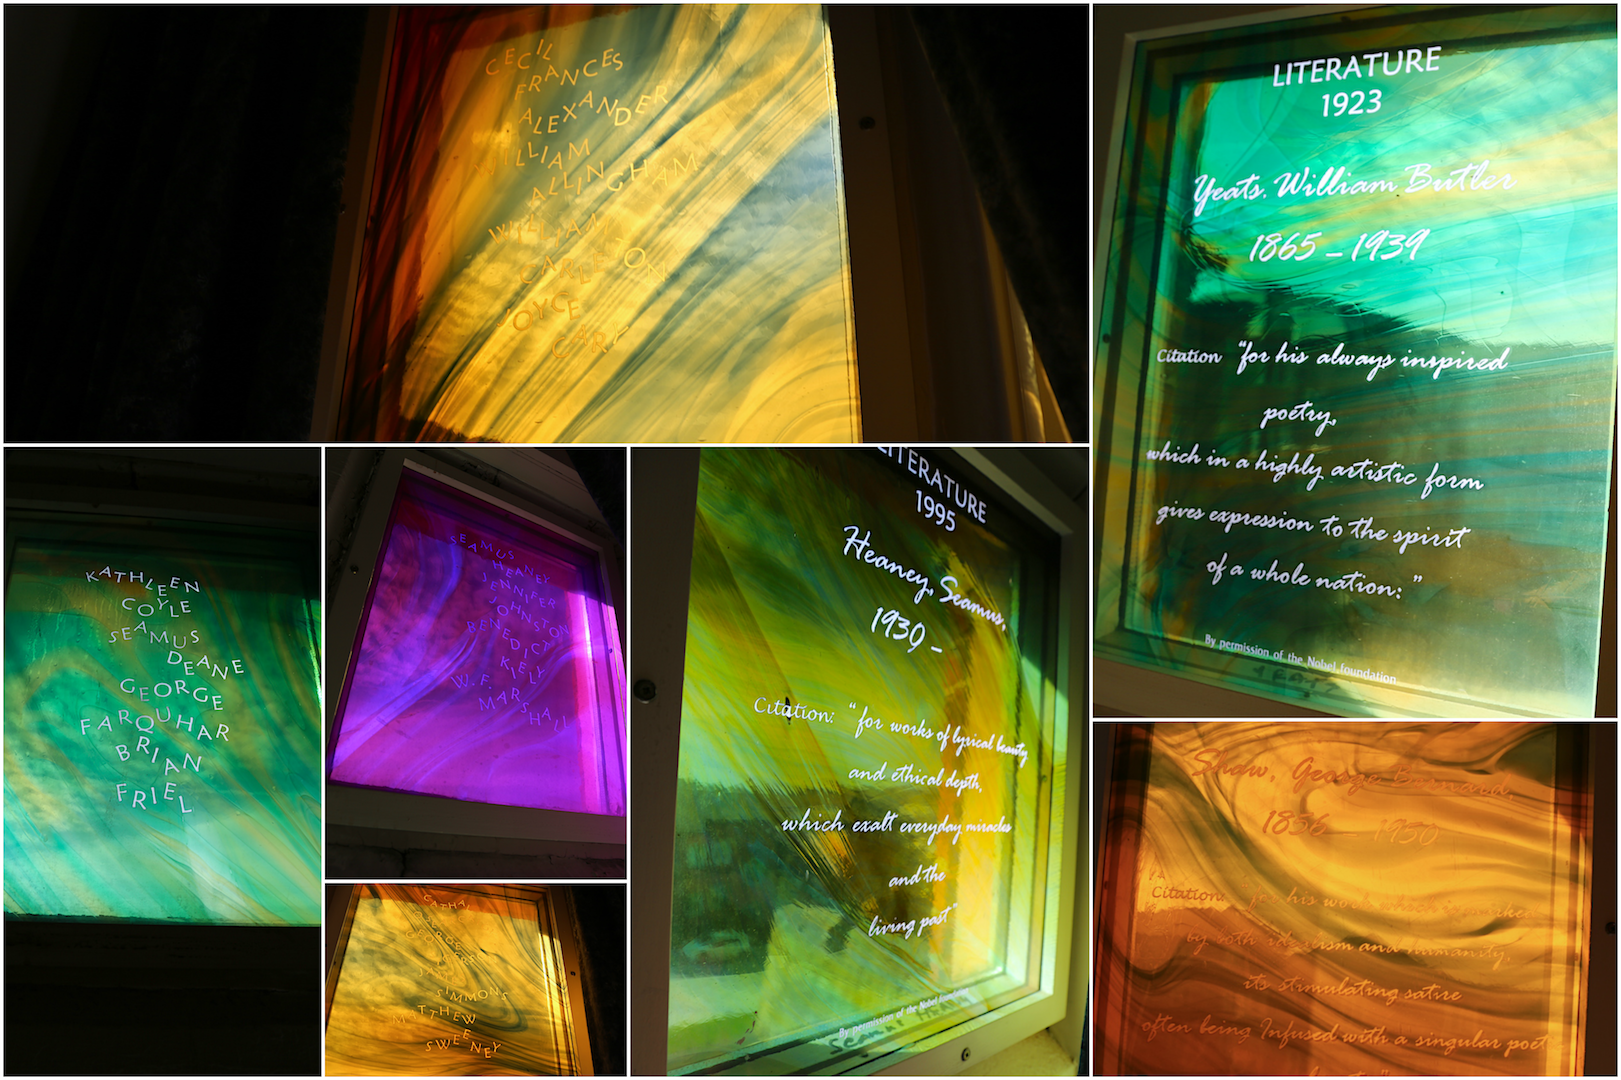 Collage of stained glass celebrating Irelands four nobel laureates for literature